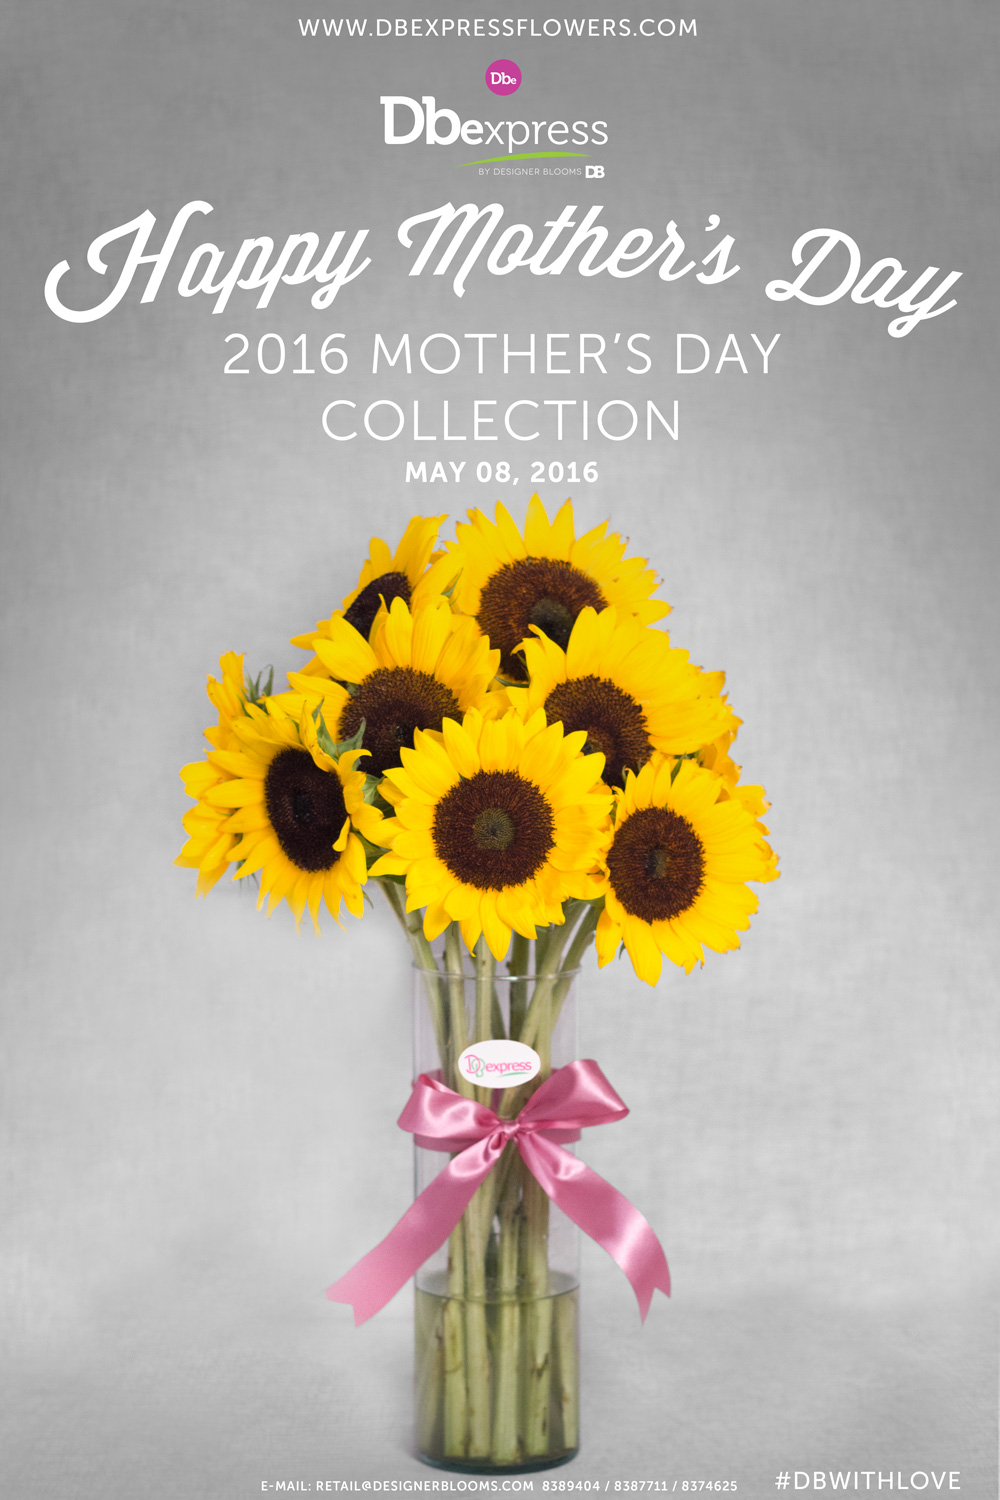 DBx-2016-Mother's-Day-COLLECTION-poster